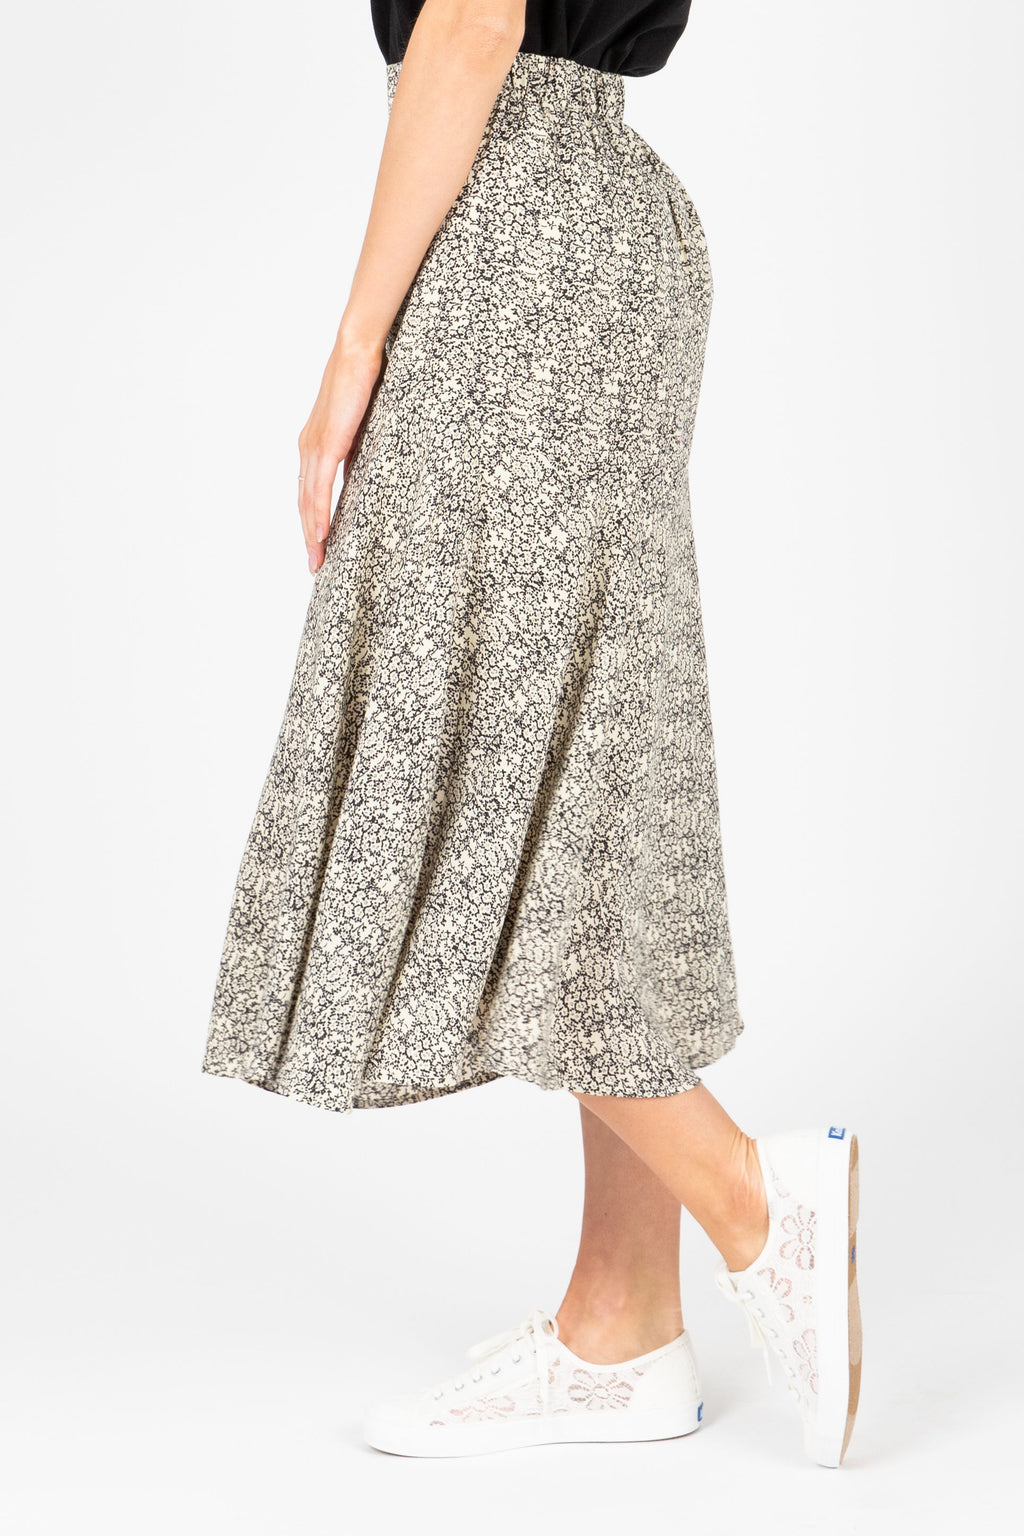 The Livia Patterned Skirt in Black, studio shoot; side view